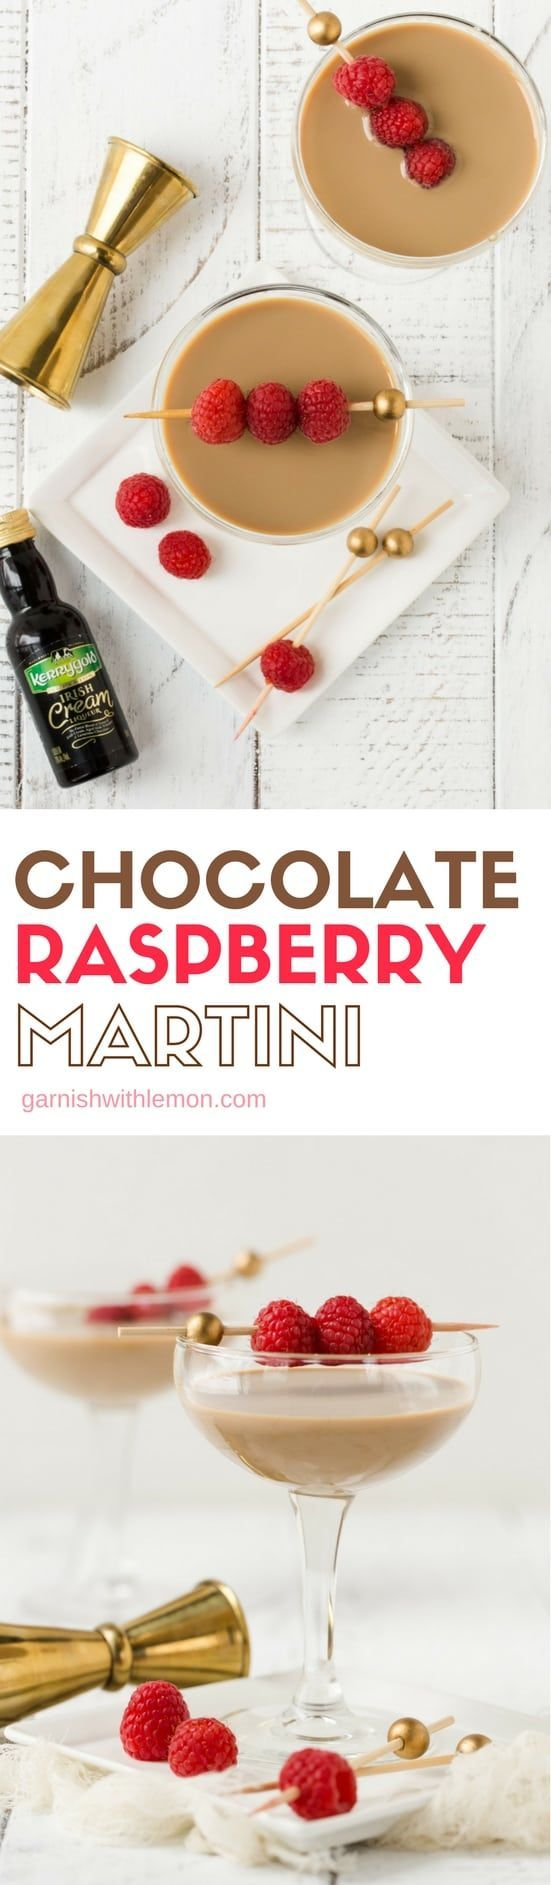 Don't worry about dessert! This Chocolate Raspberry Martini is dessert in a glass and the perfect night cap. Or, if you're brainstorming what to make for Valentine's Day, this is the answer